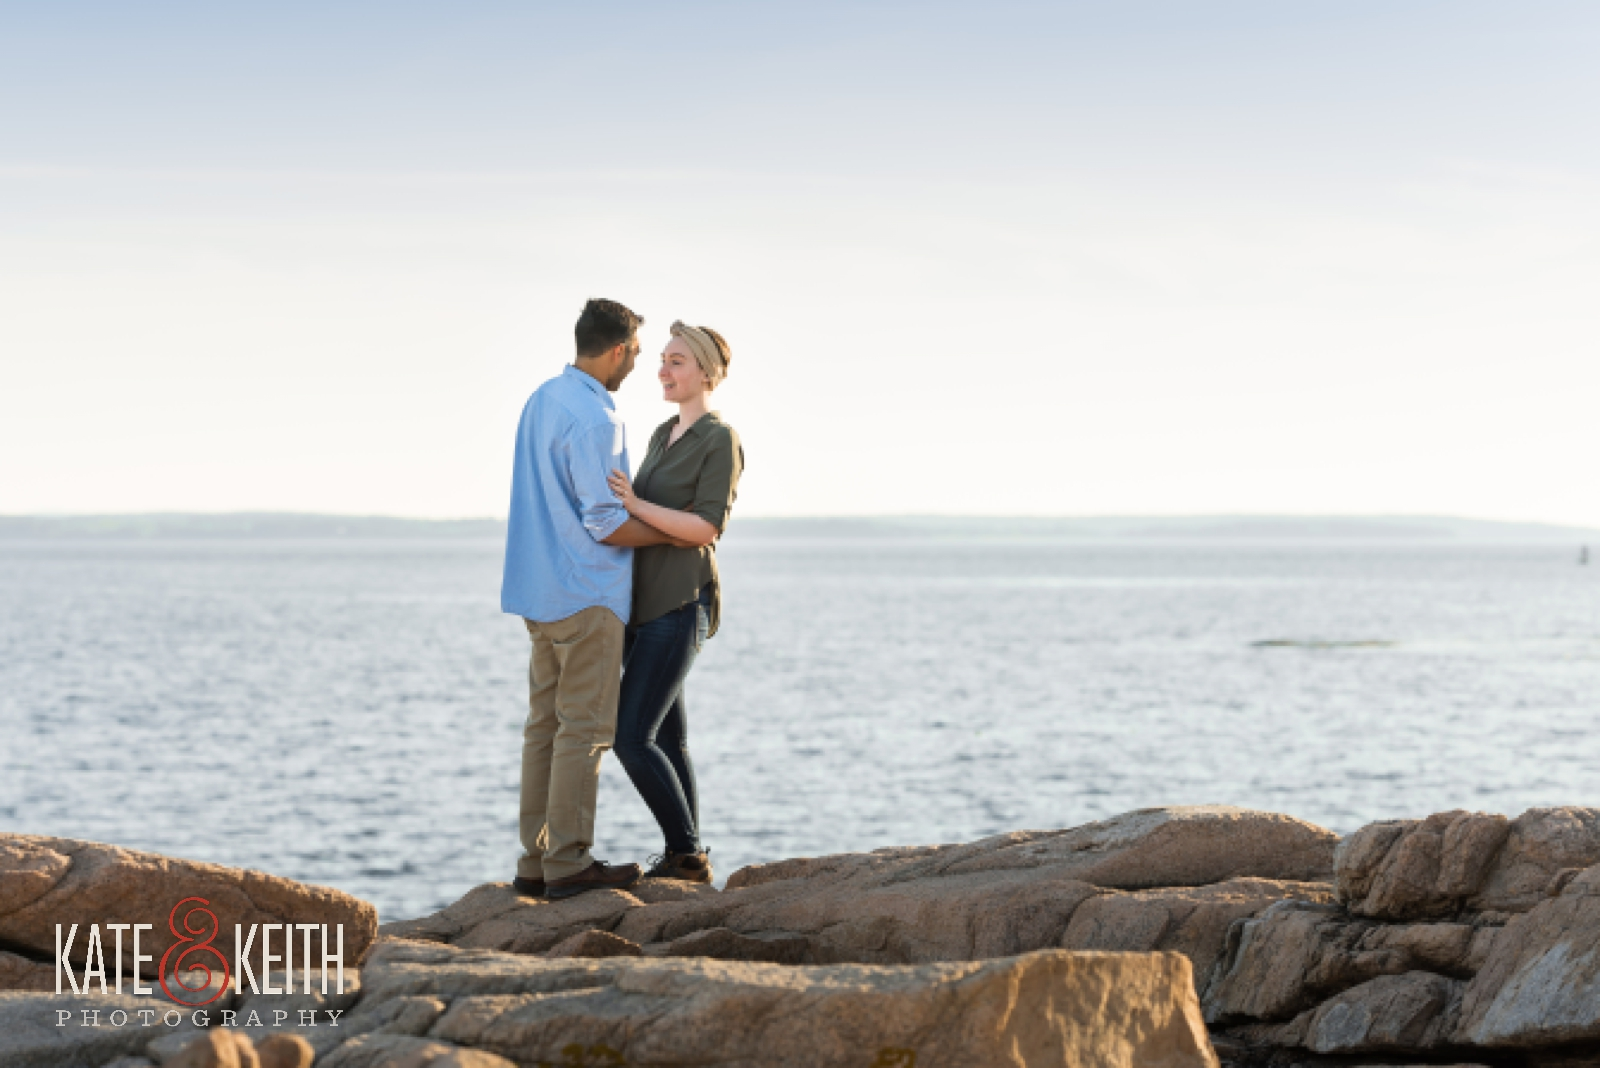 Couple celebrating engagement in Acadia National Park, Maine, Mount Desert Island, surprise proposal, wedding proposal, coast, ocean, seaside, rocky coast